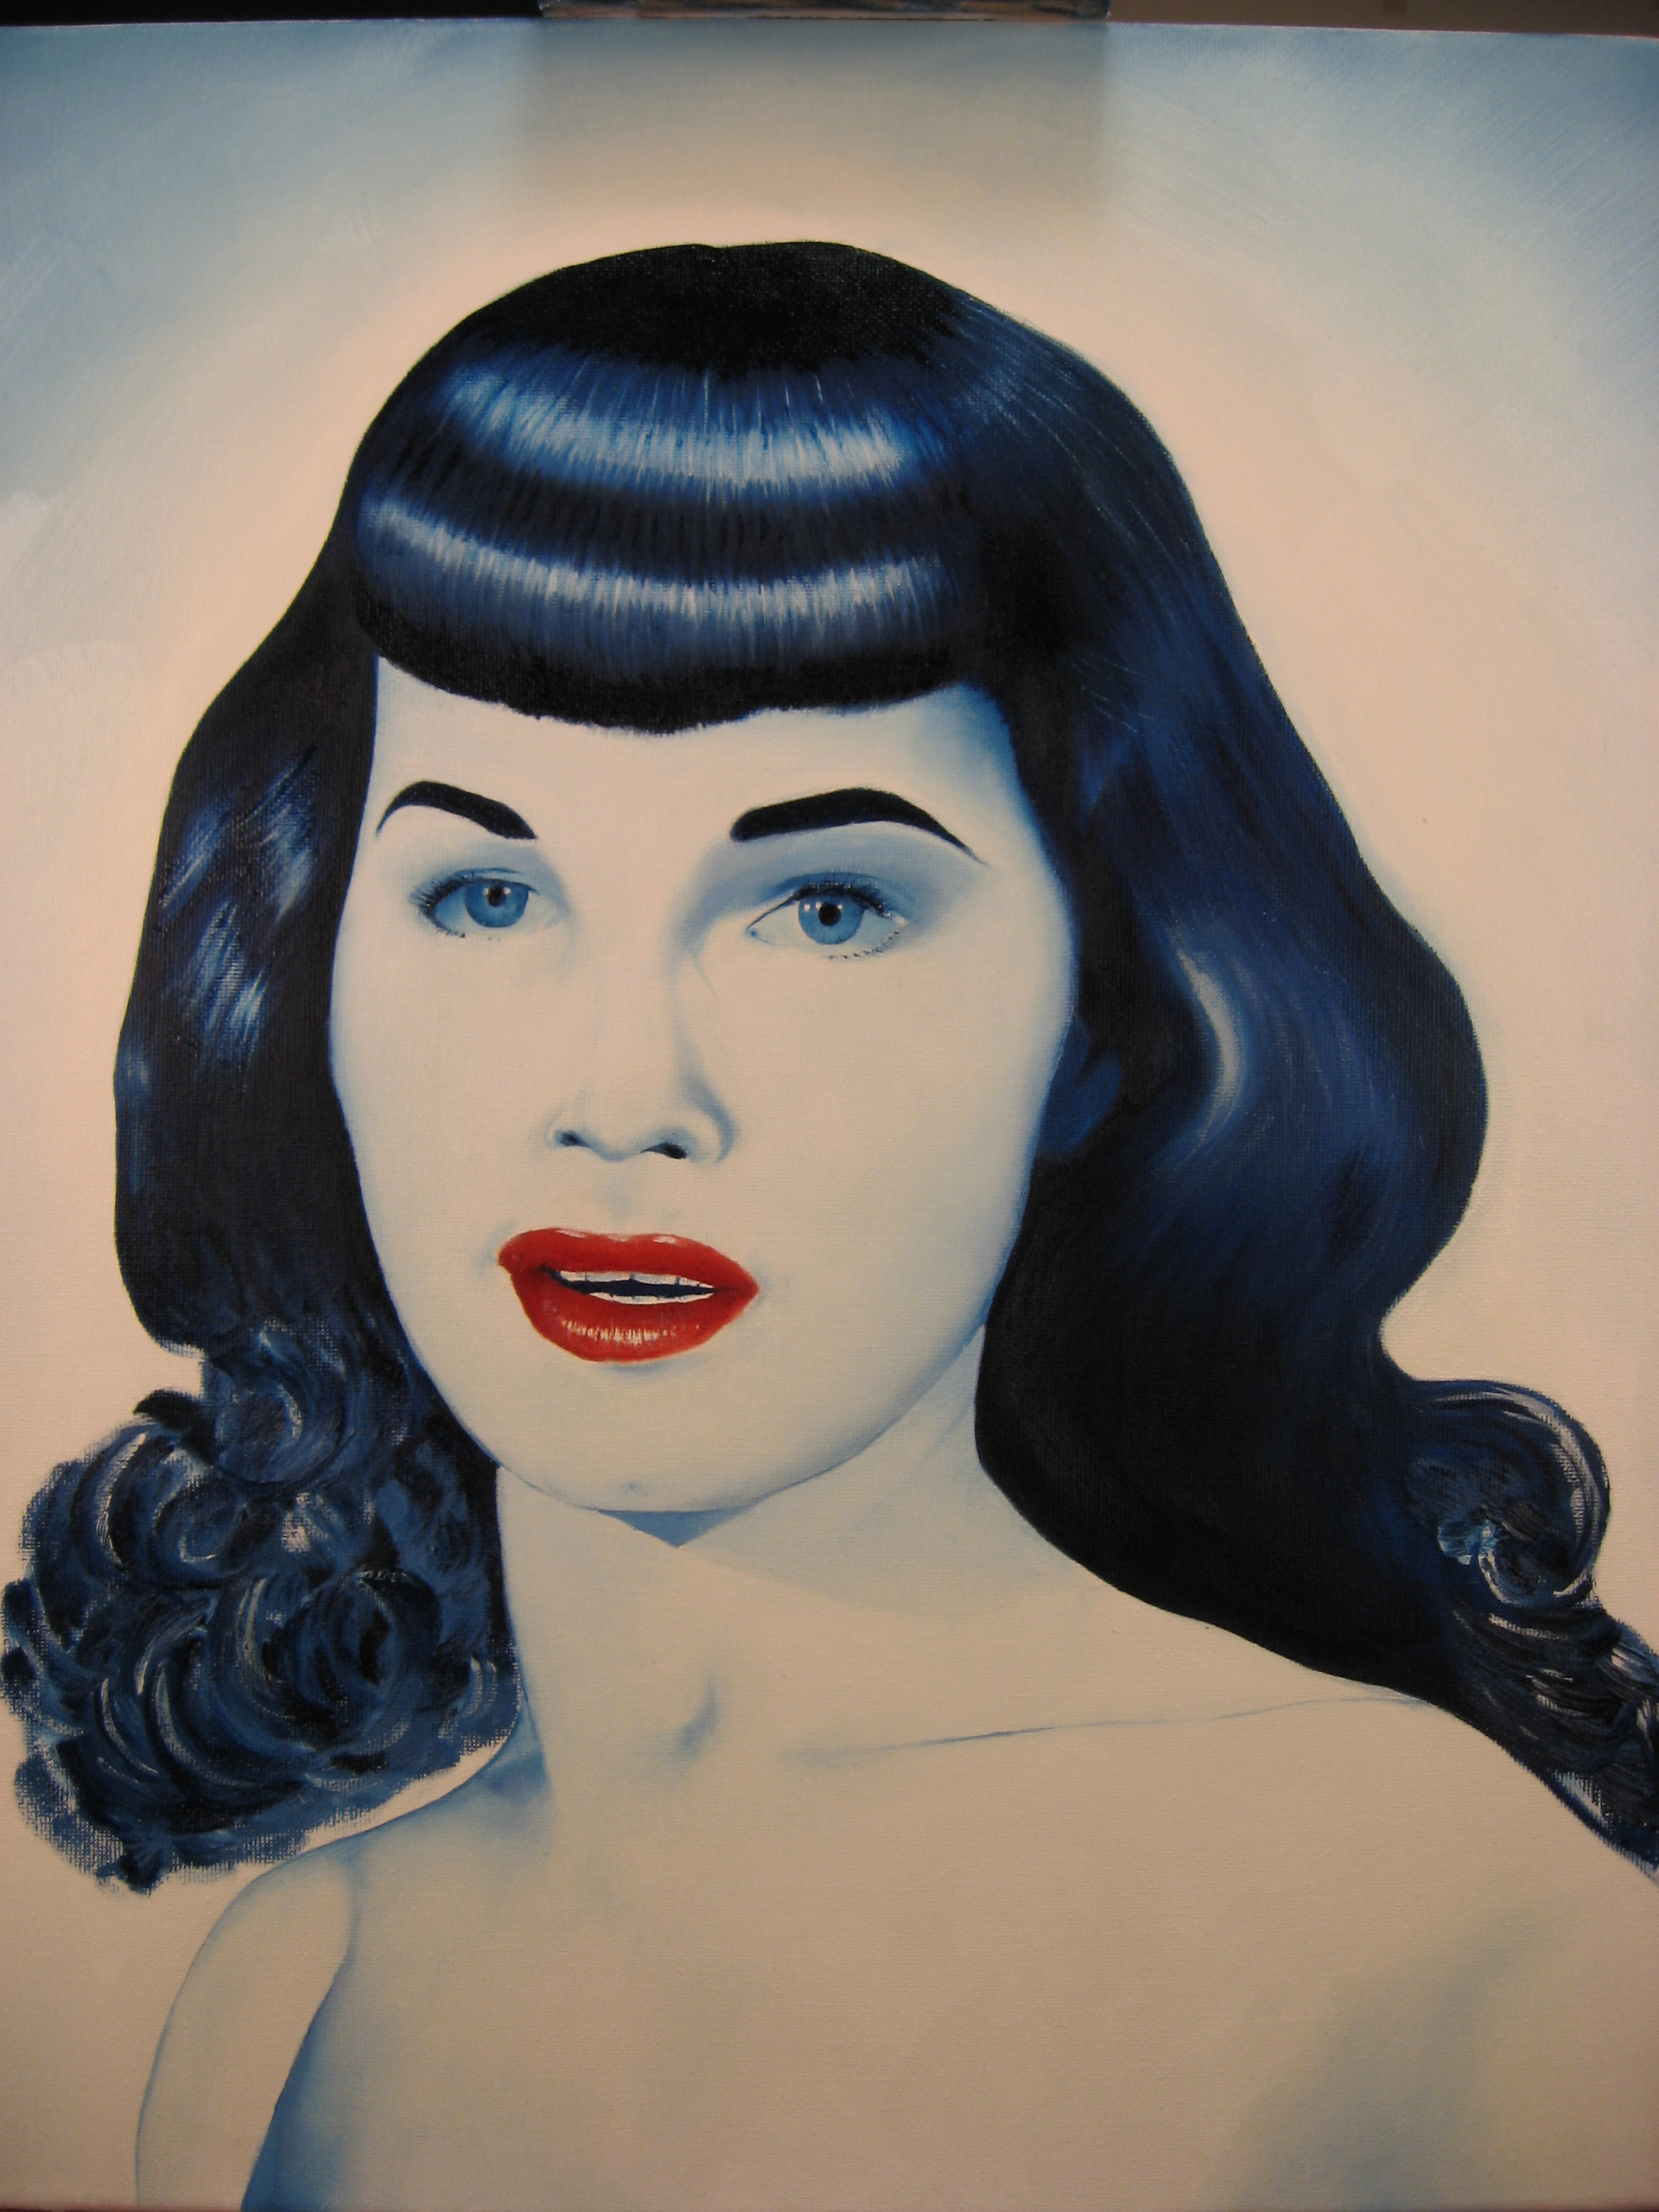 Bettie Page Hd bettie in blue - bettie page fan art (20357805) - fanpop